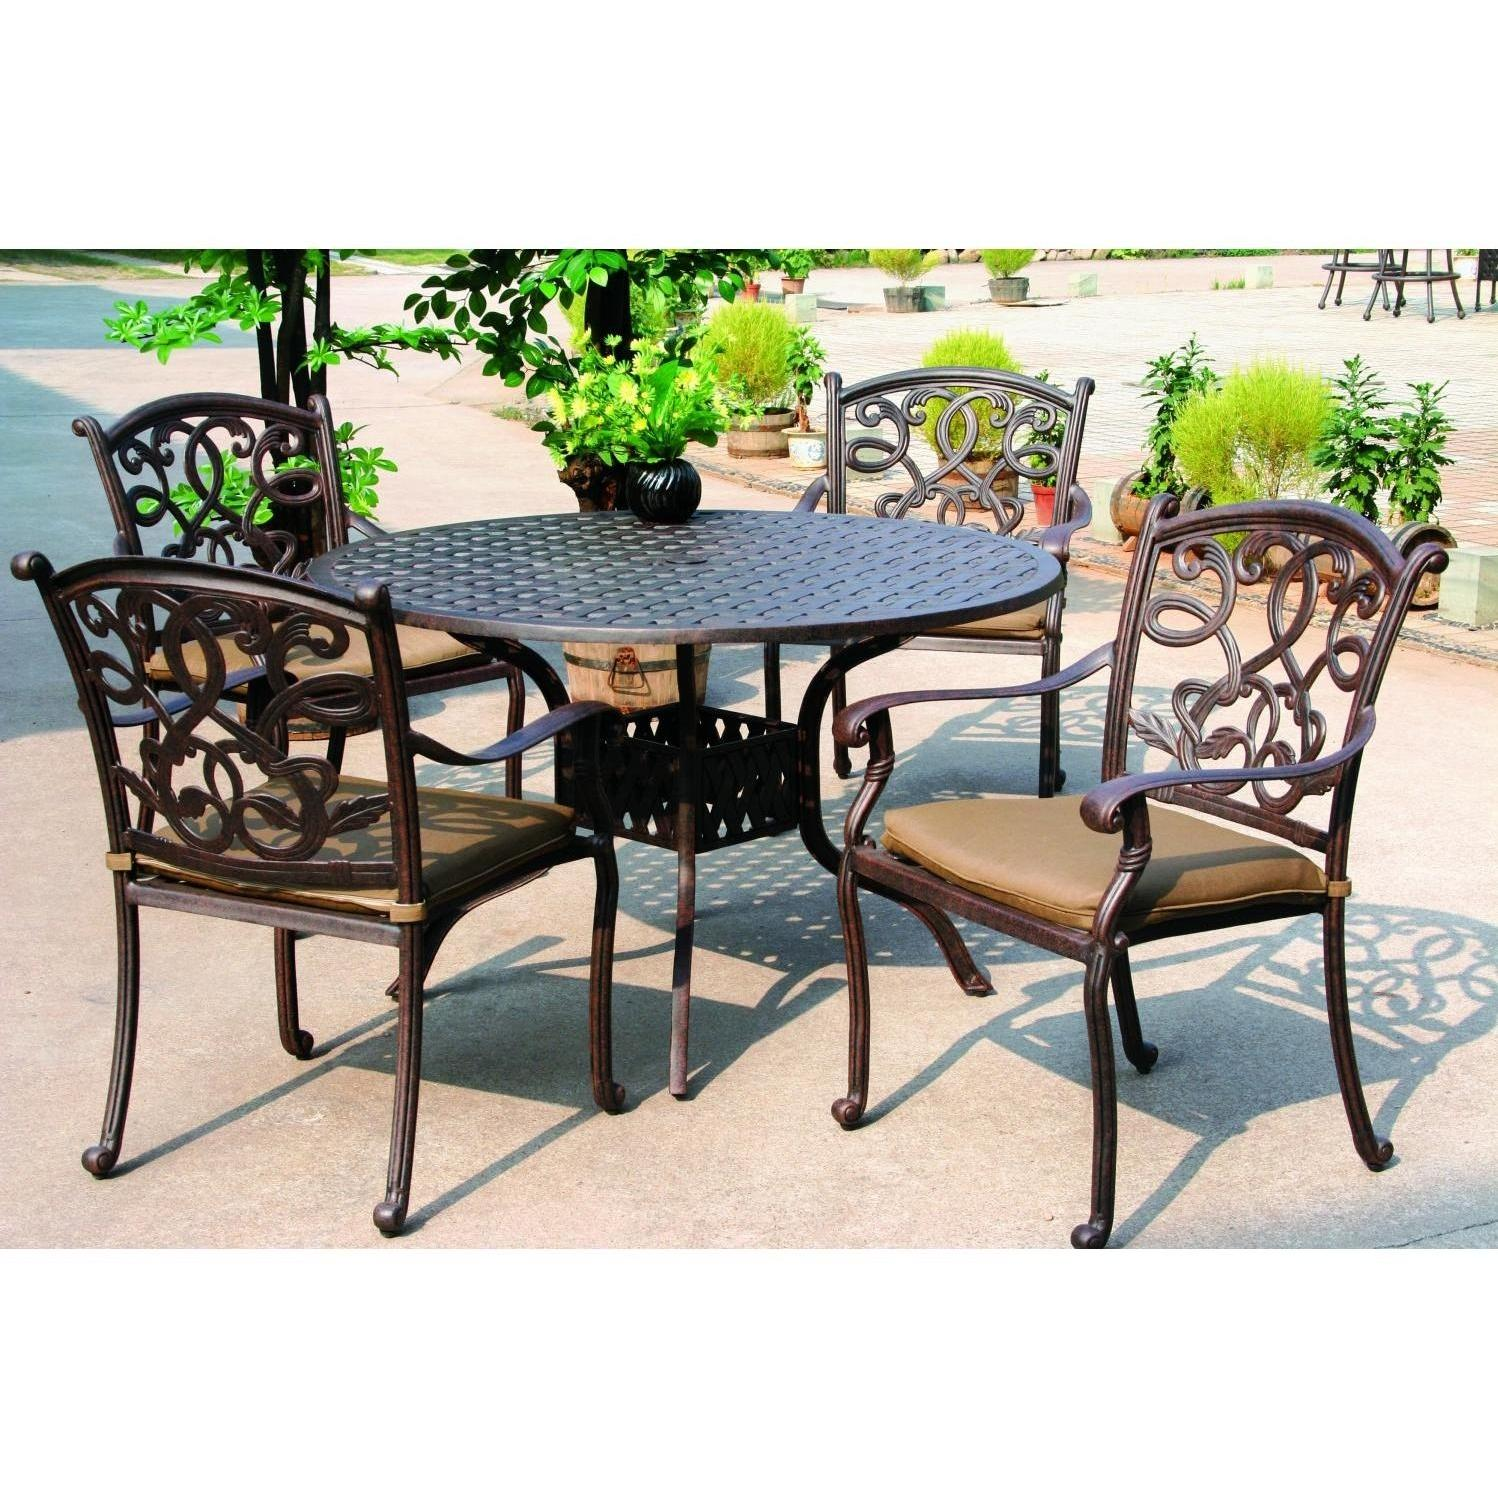 Darlee santa monica 5 piece cast aluminum patio dining set for Outdoor furniture brands